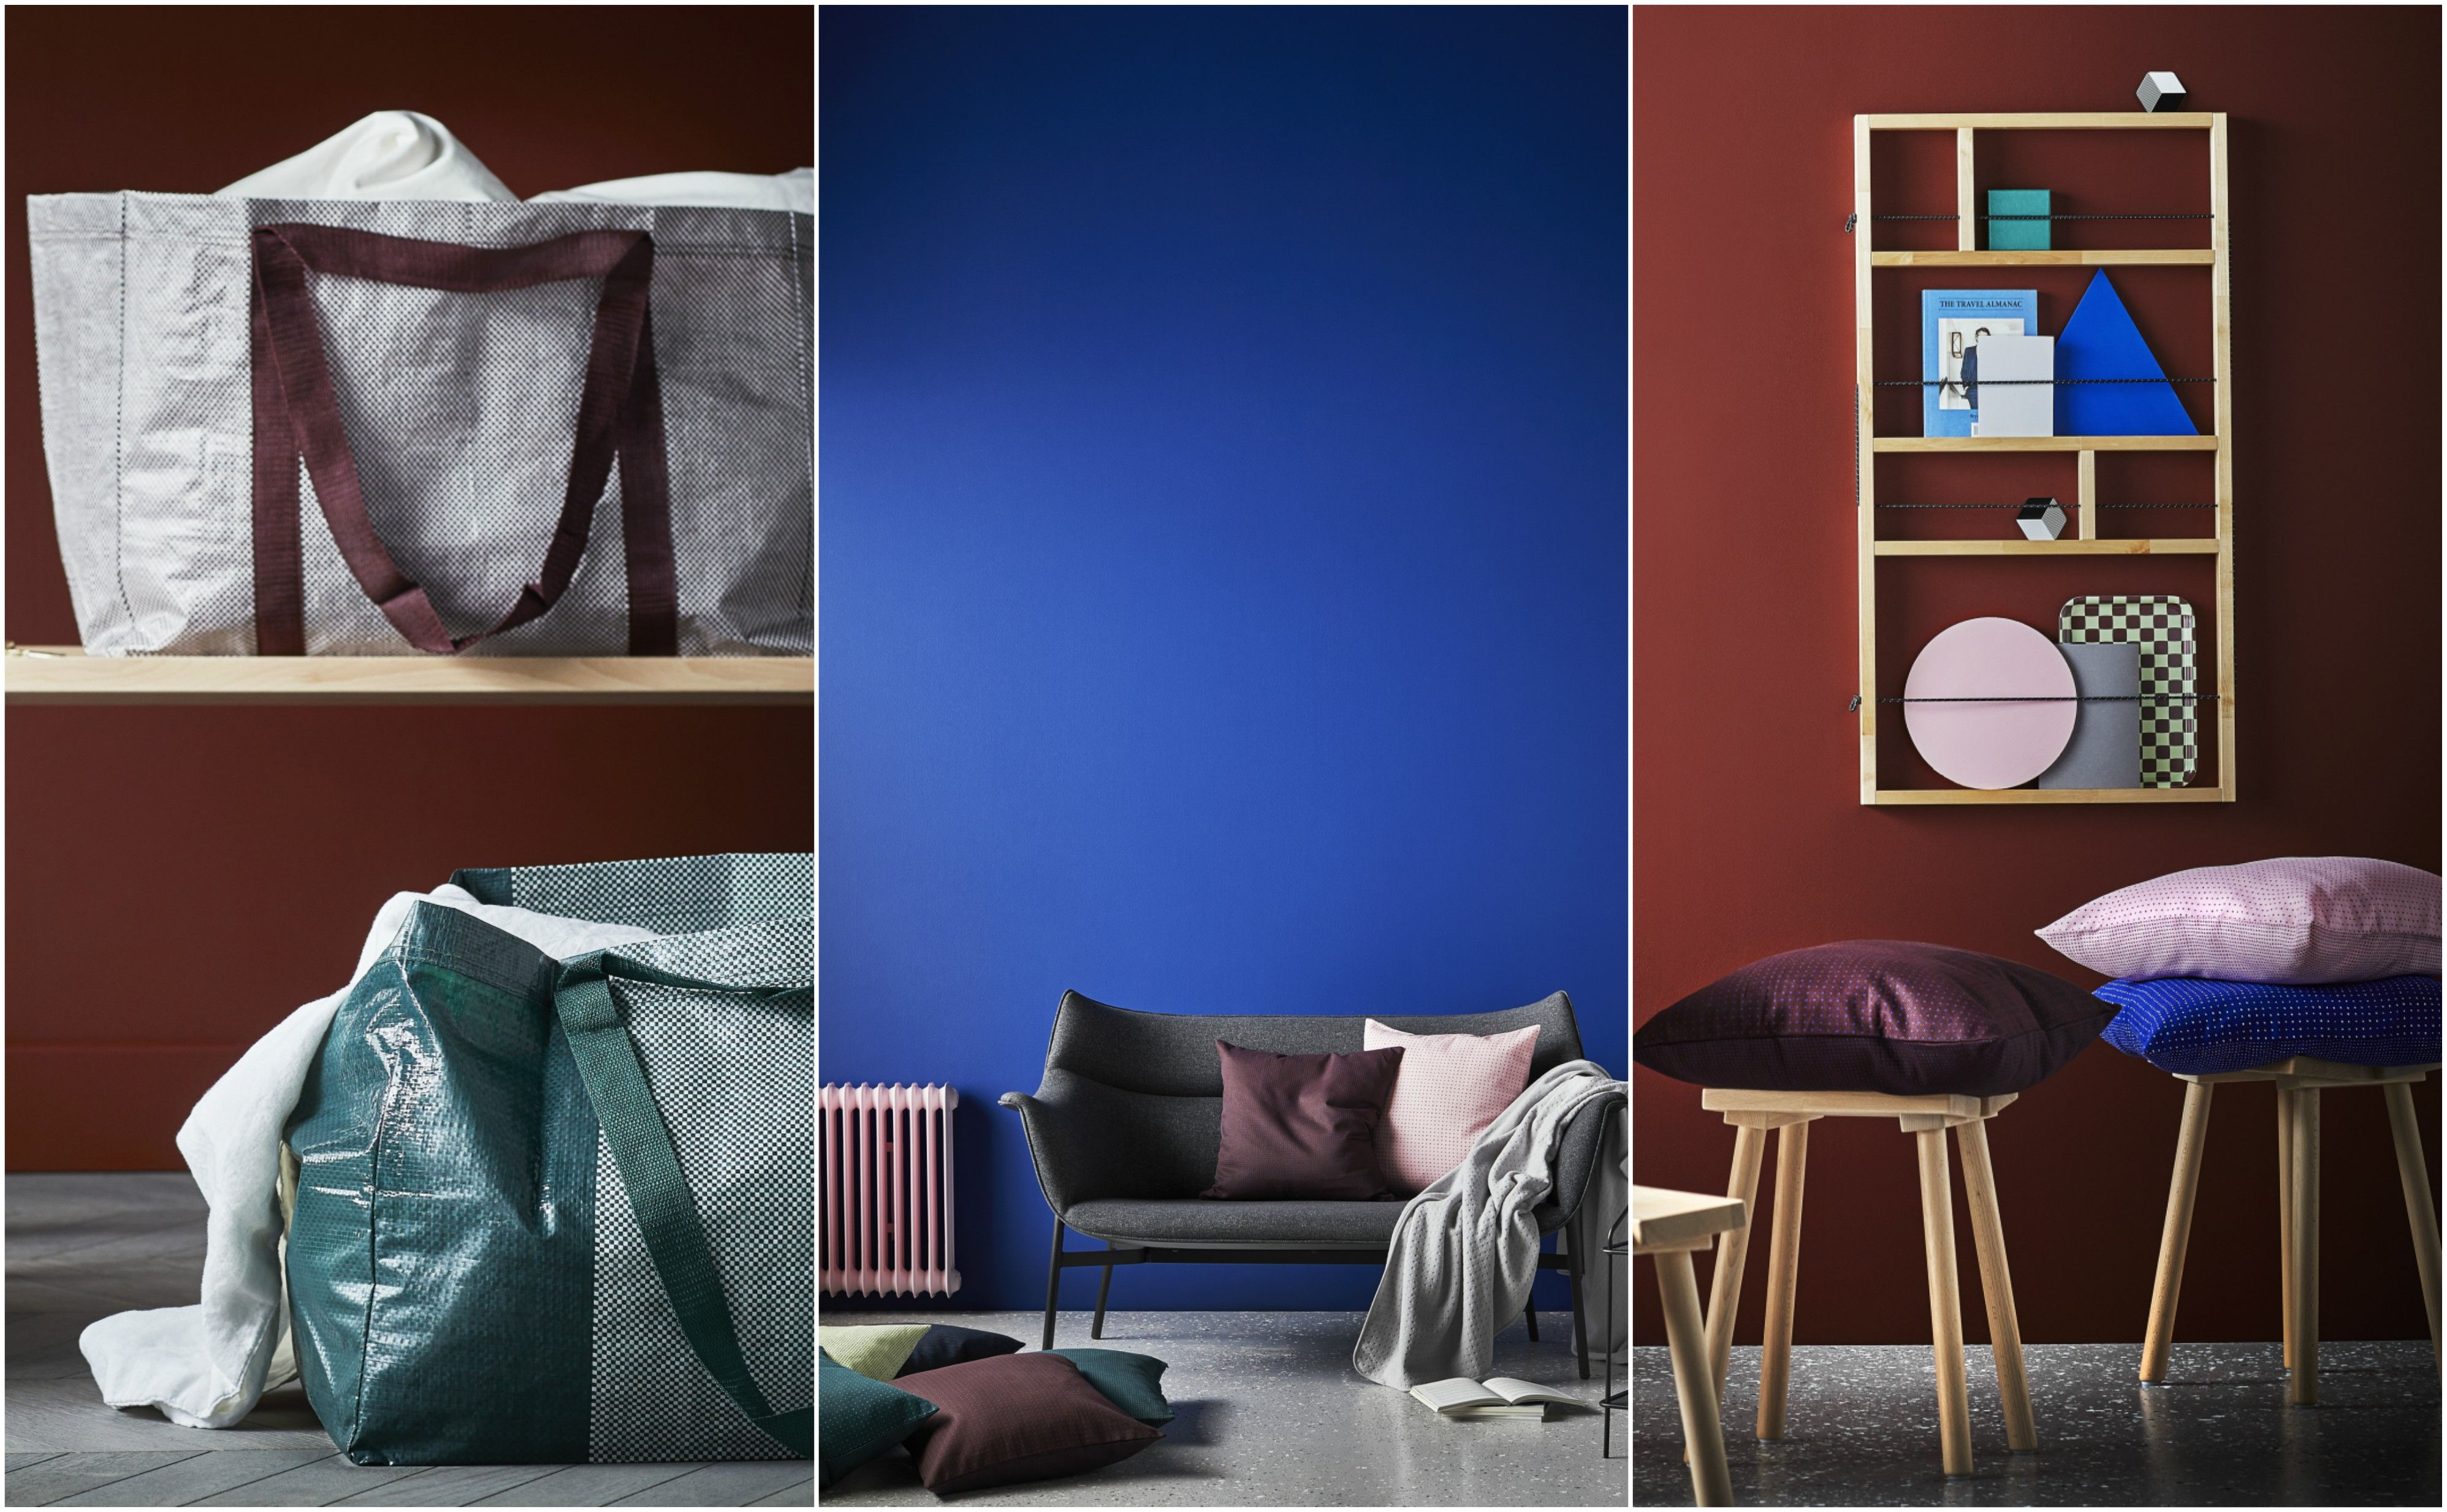 Pleasing 7 Items Youll Love From Ypperlig Ikeas New Collection Gmtry Best Dining Table And Chair Ideas Images Gmtryco